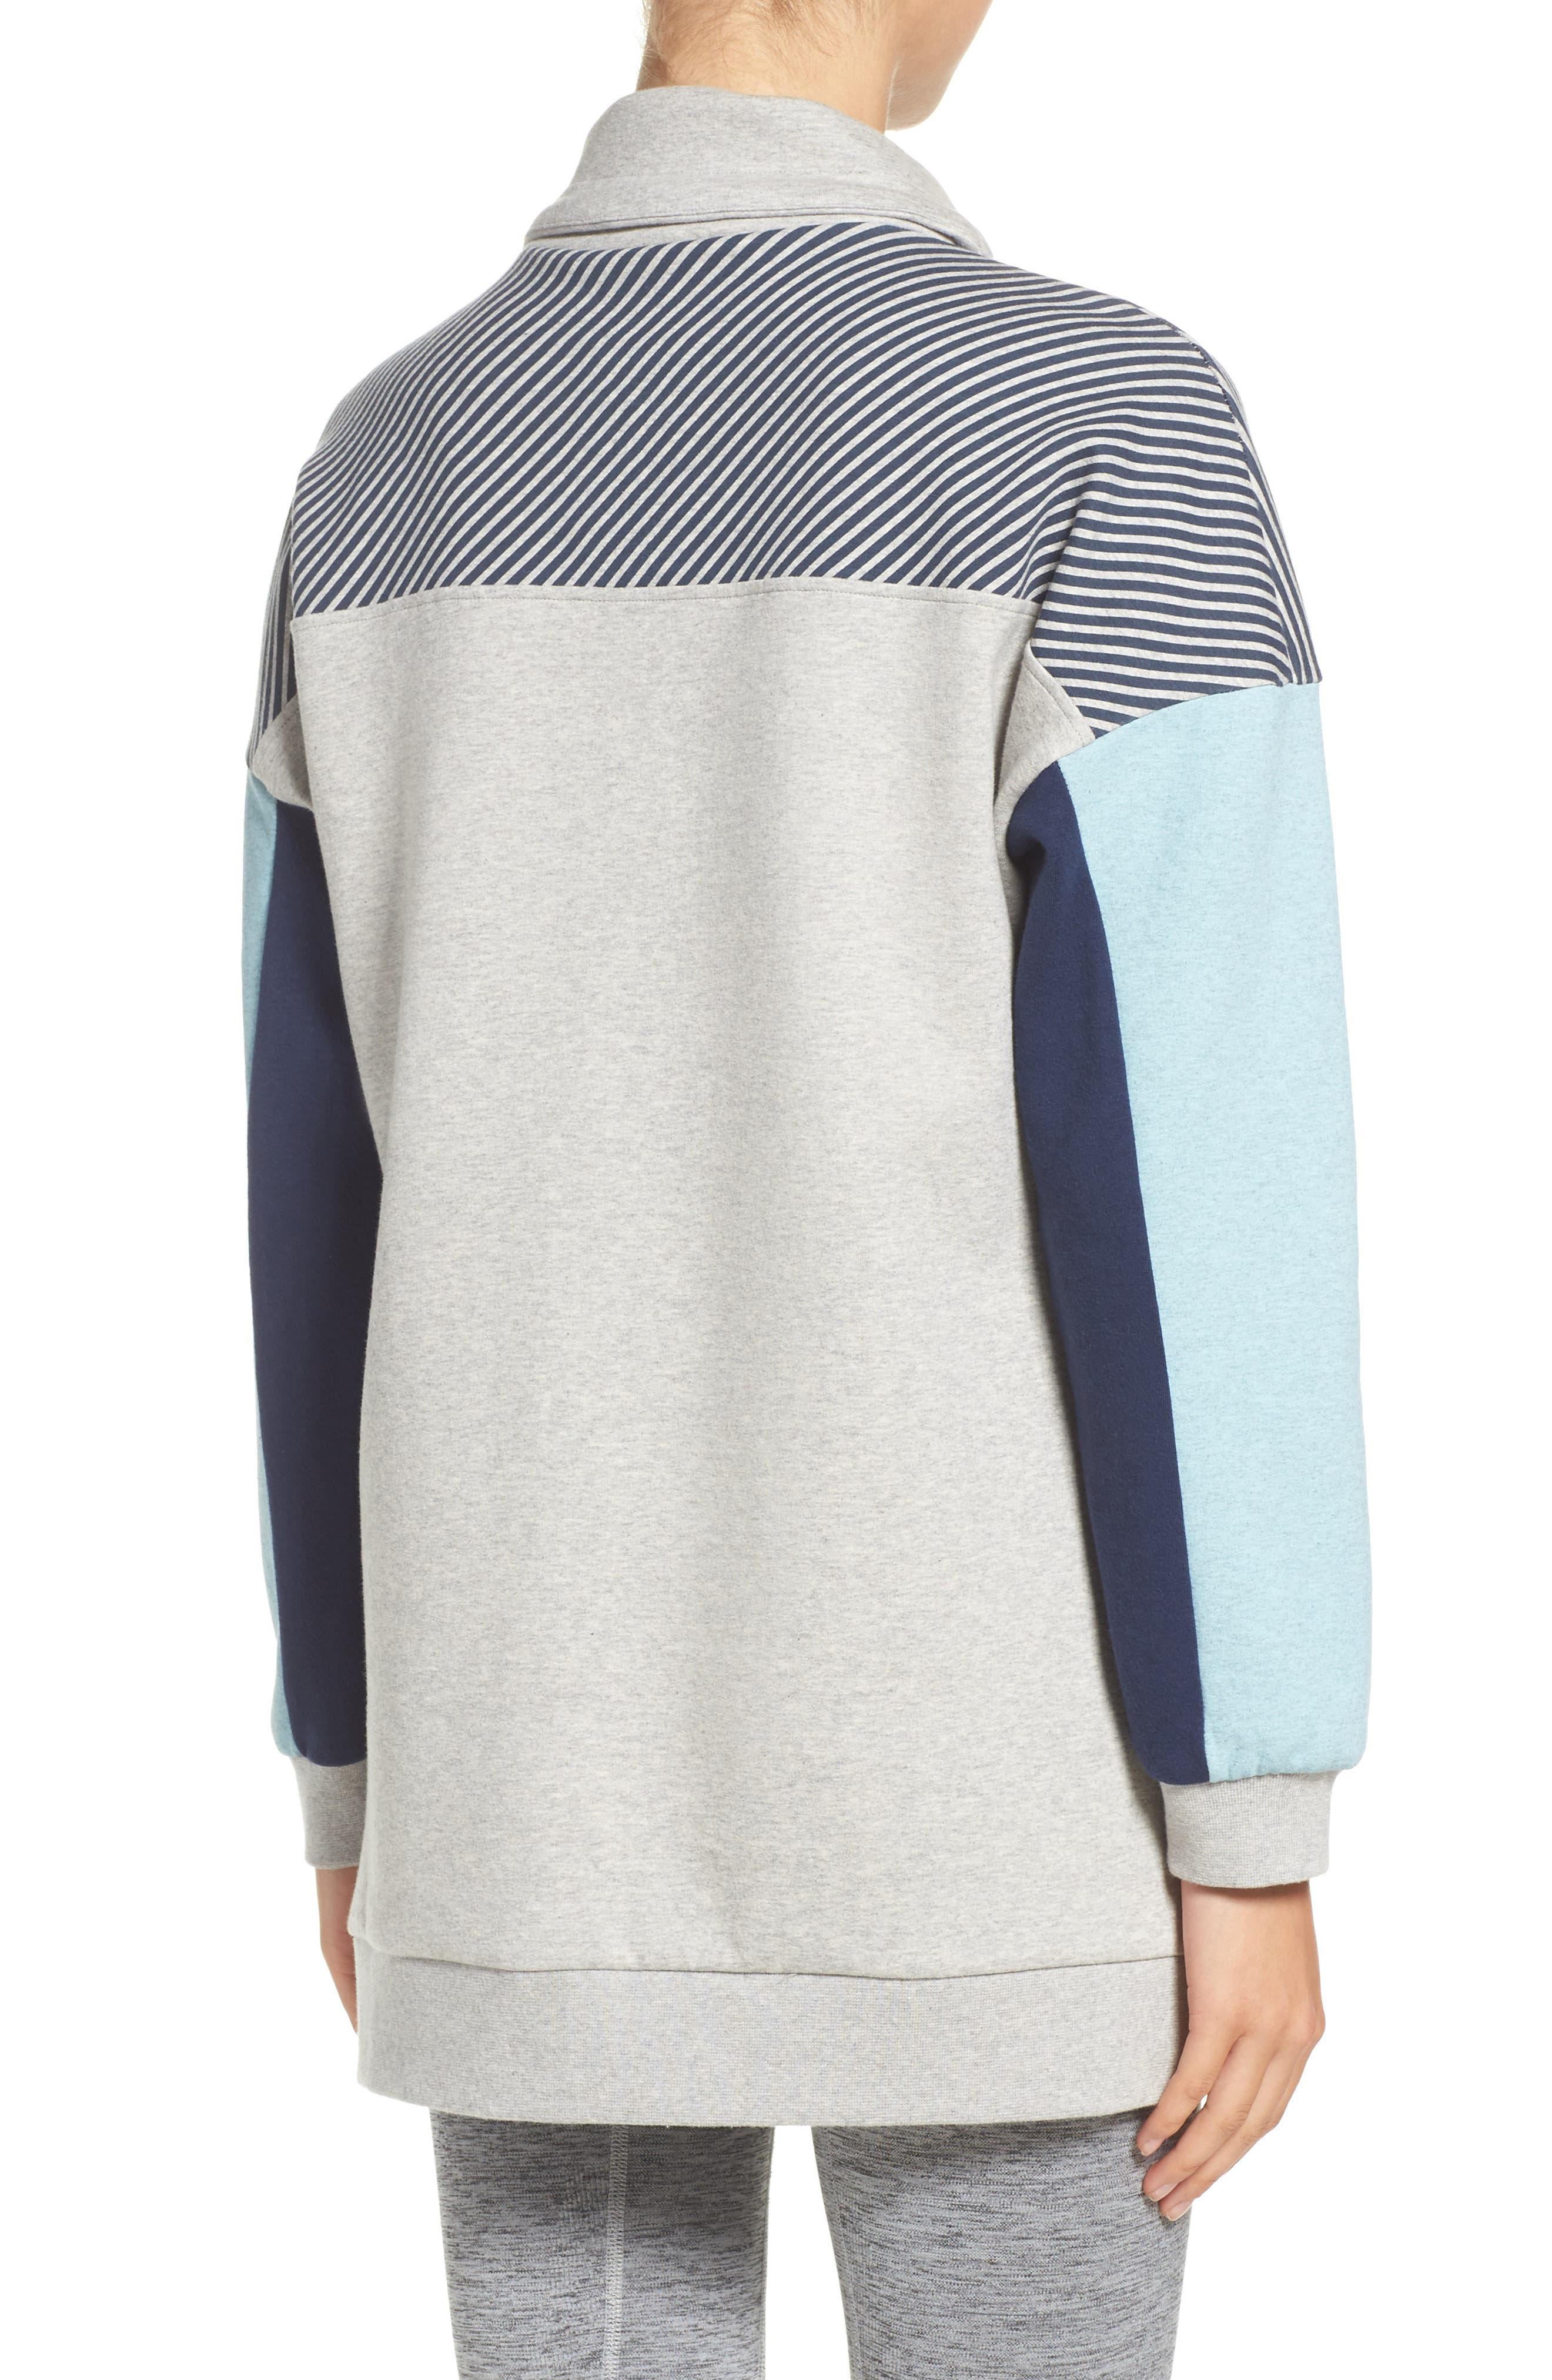 Noodie Funnel Neck Pullover,                             Alternate thumbnail 2, color,                             020